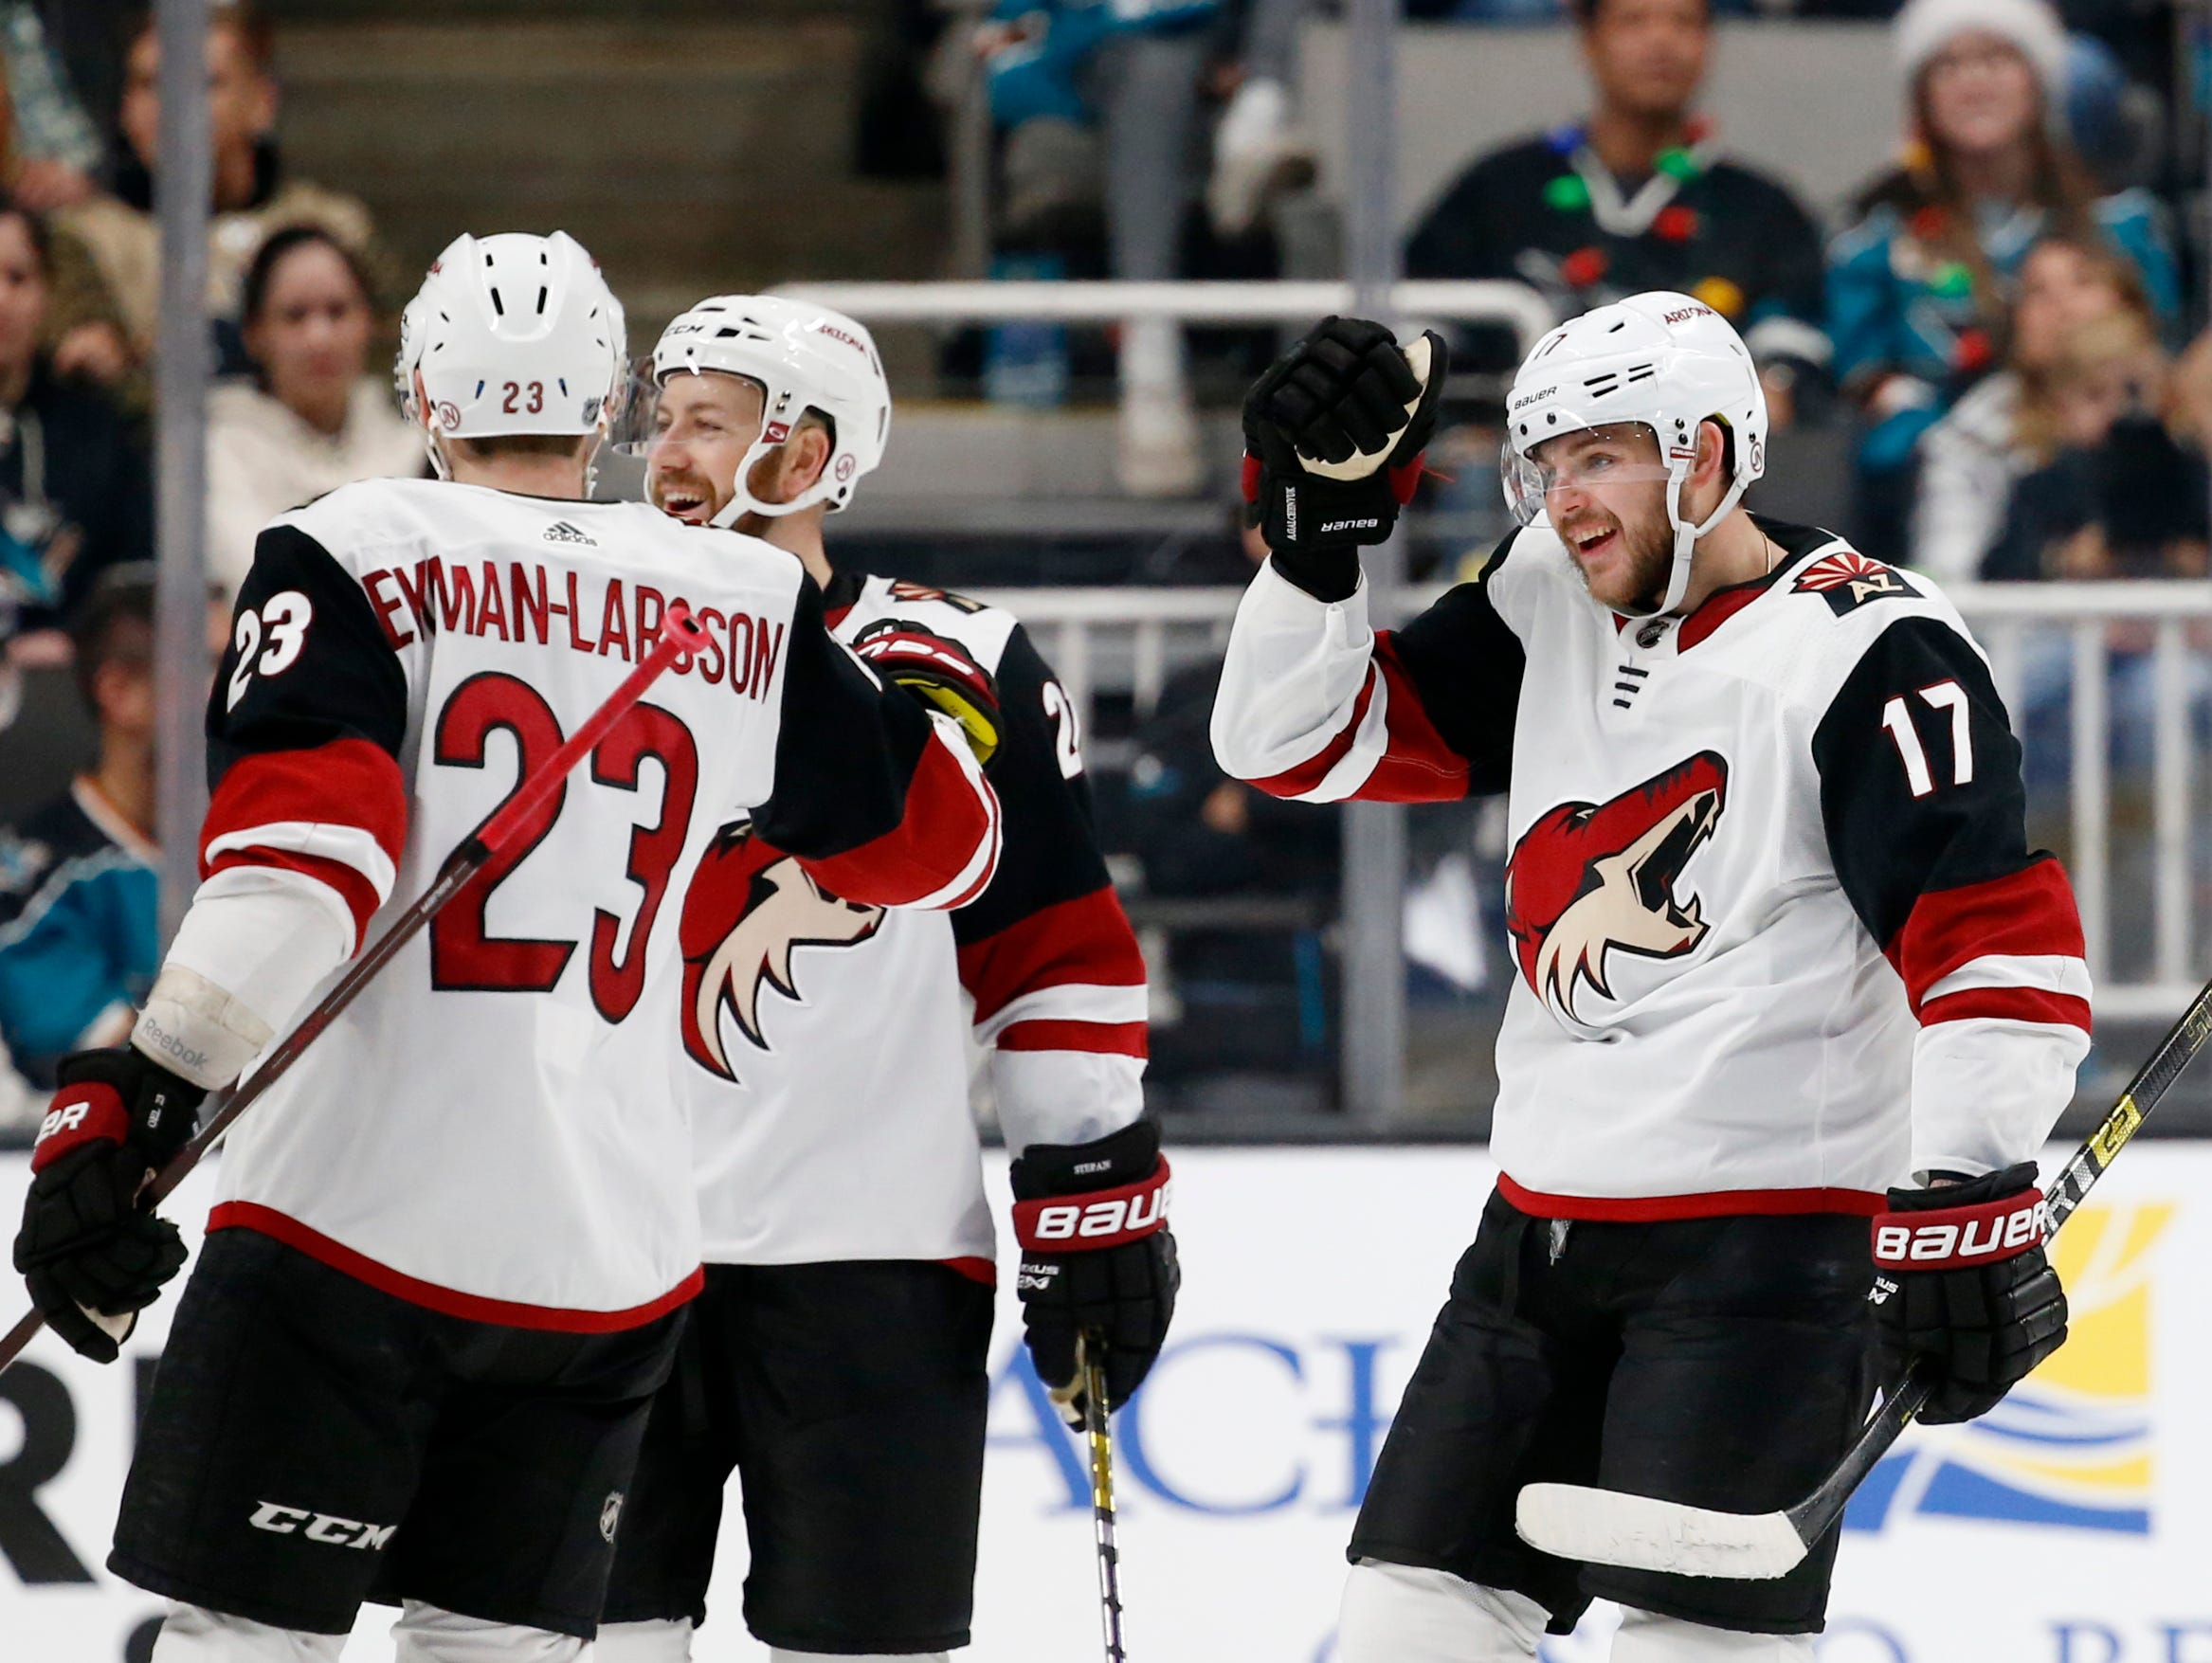 Arizona Coyotes' Alex Galchenyuk (17) celebrates with Oliver Ekman-Larsson (23) after scoring his second goal of the night against the San Jose Sharks in the second period of an NHL hockey game in San Jose, Calif., Sunday, Dec. 23, 2018. (AP Photo/Josie Lepe)